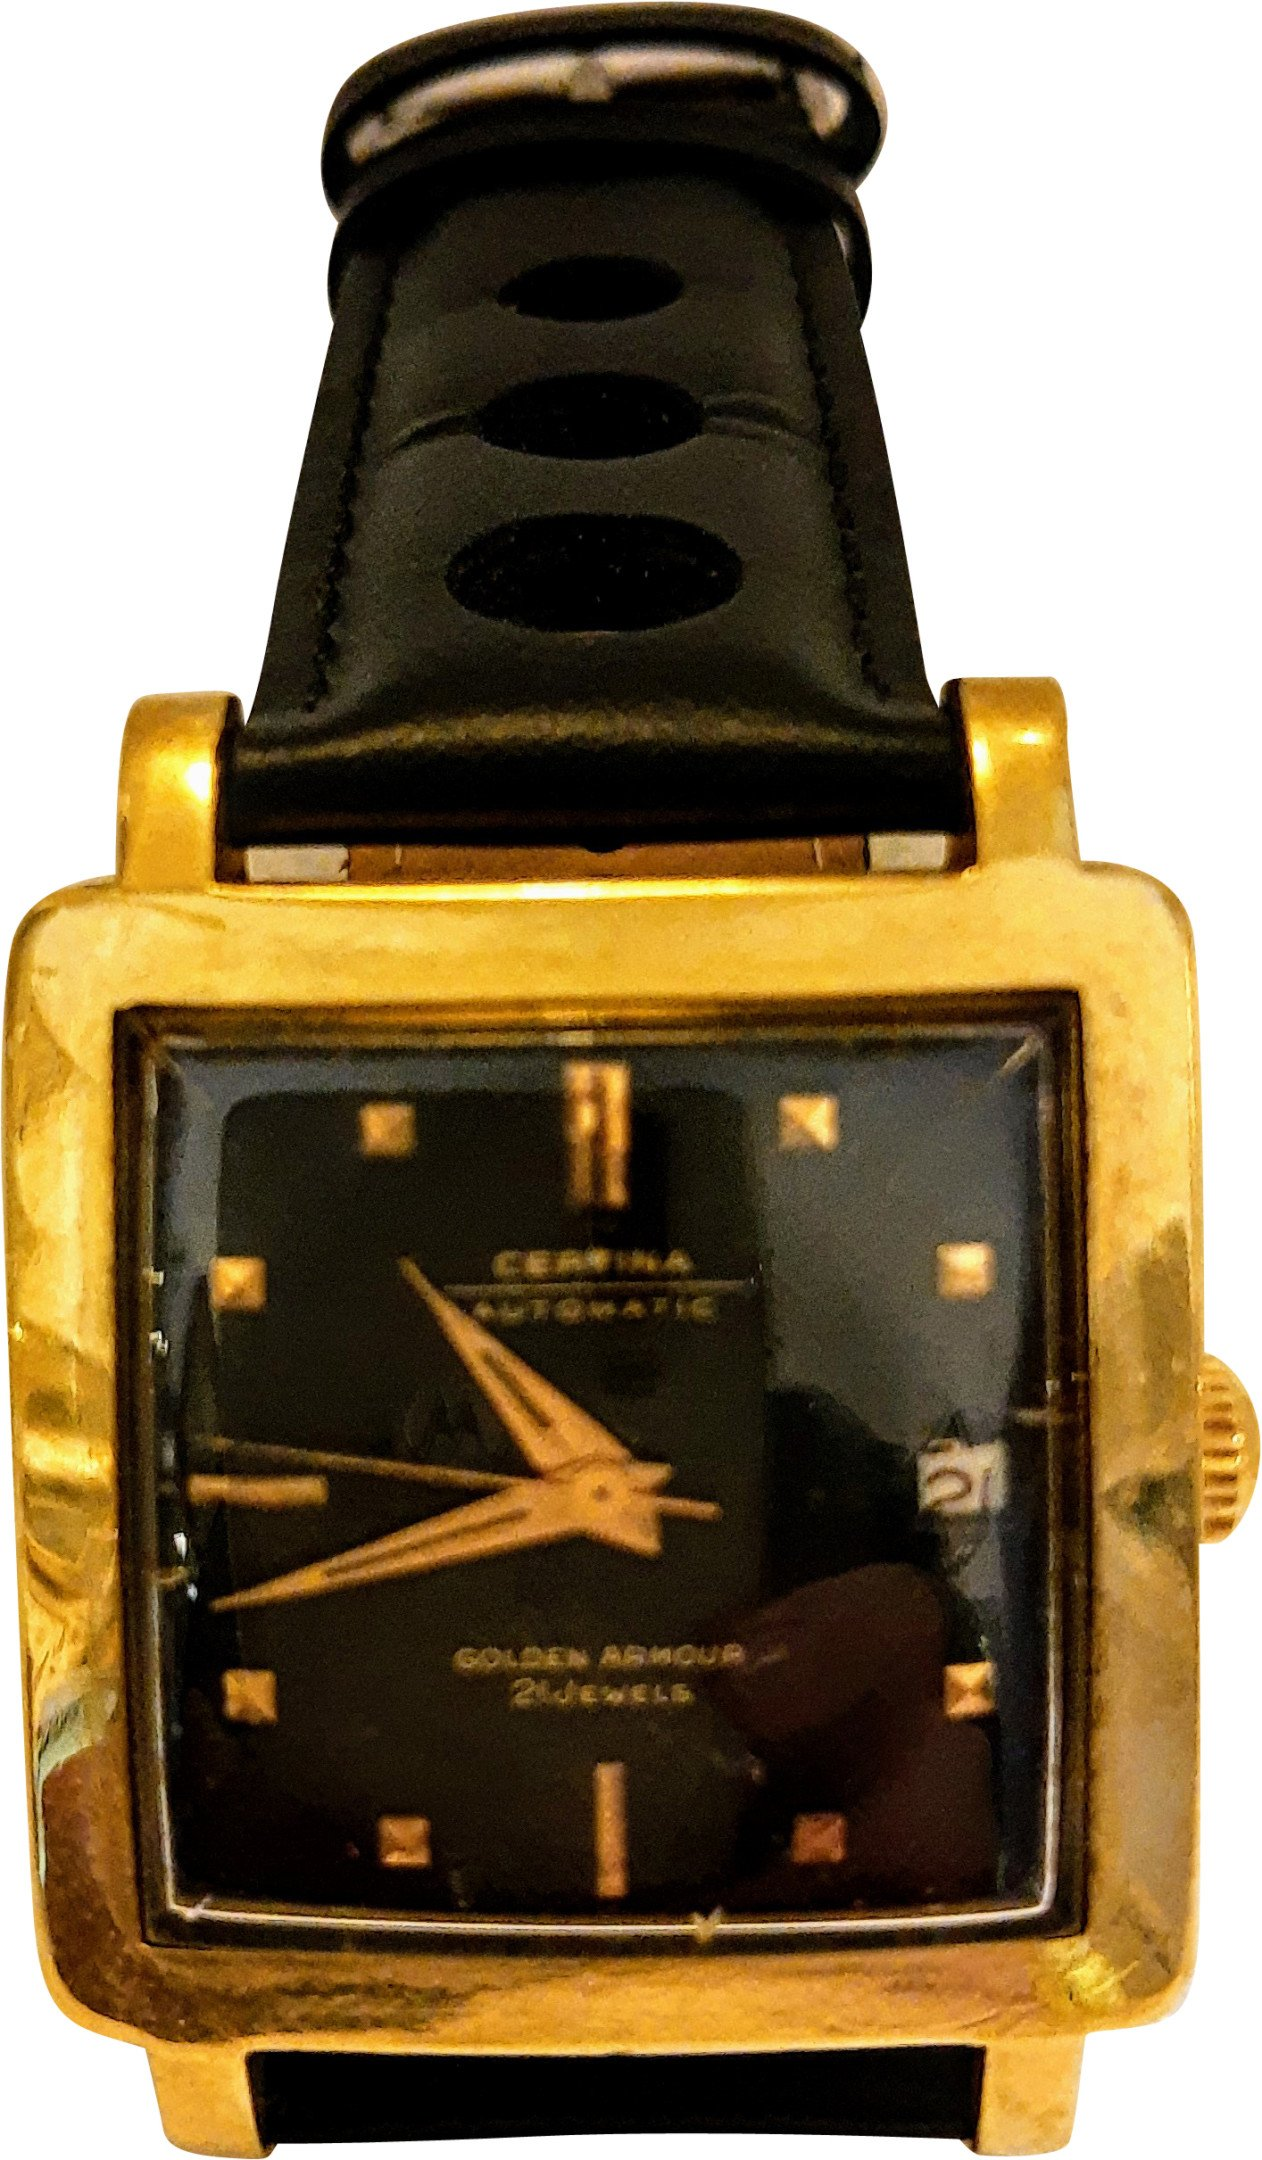 Watch, Certina, Switzerland, 1970s